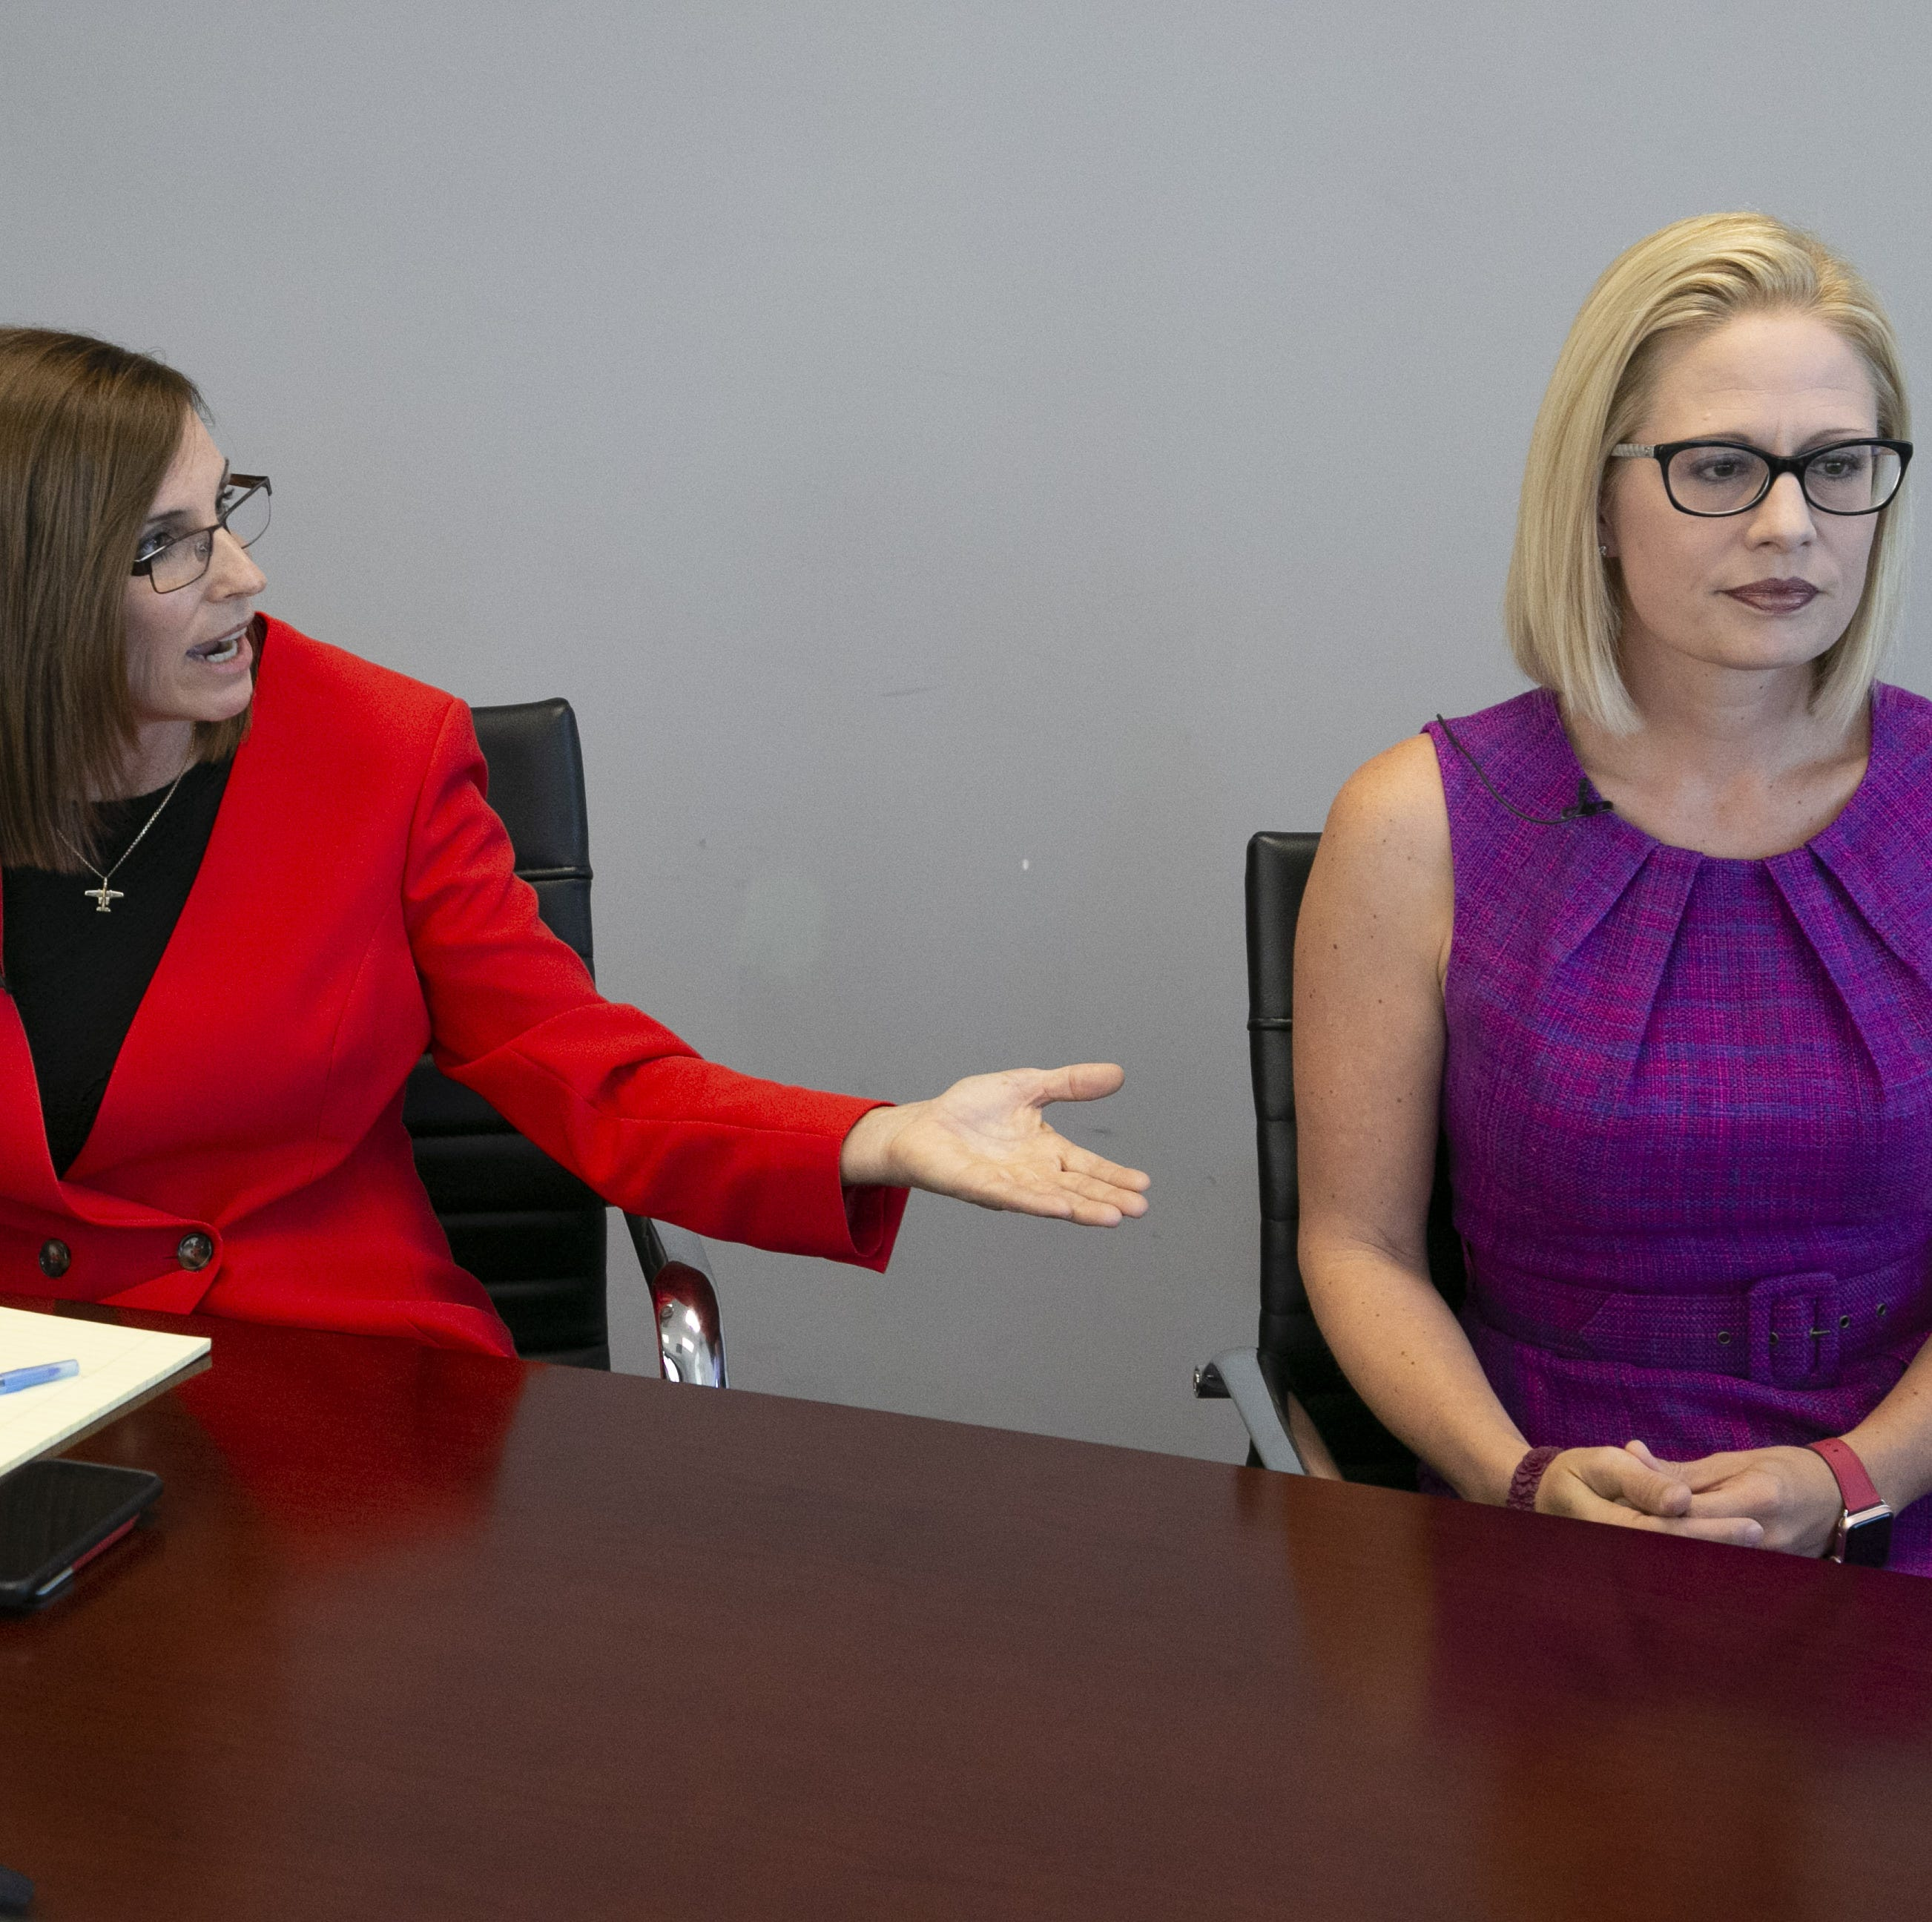 Will Martha McSally and Kyrsten Sinema let bygones be bygones?